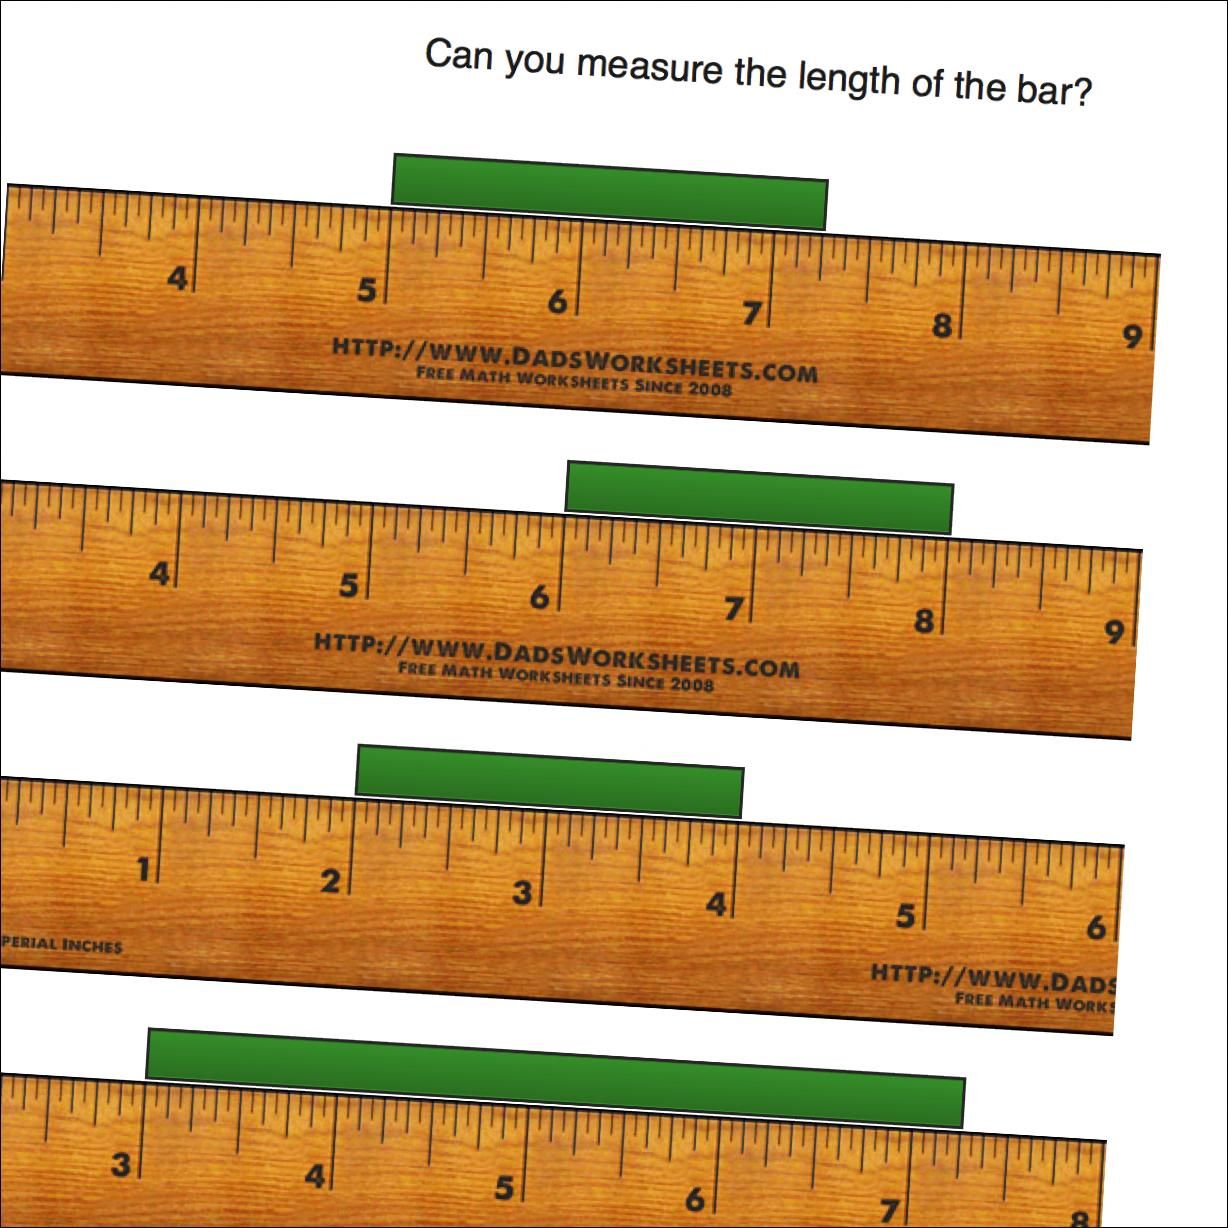 worksheet Measuring In Inches worksheets for measuring length on an imperial inch ruler starting from whole positions of the